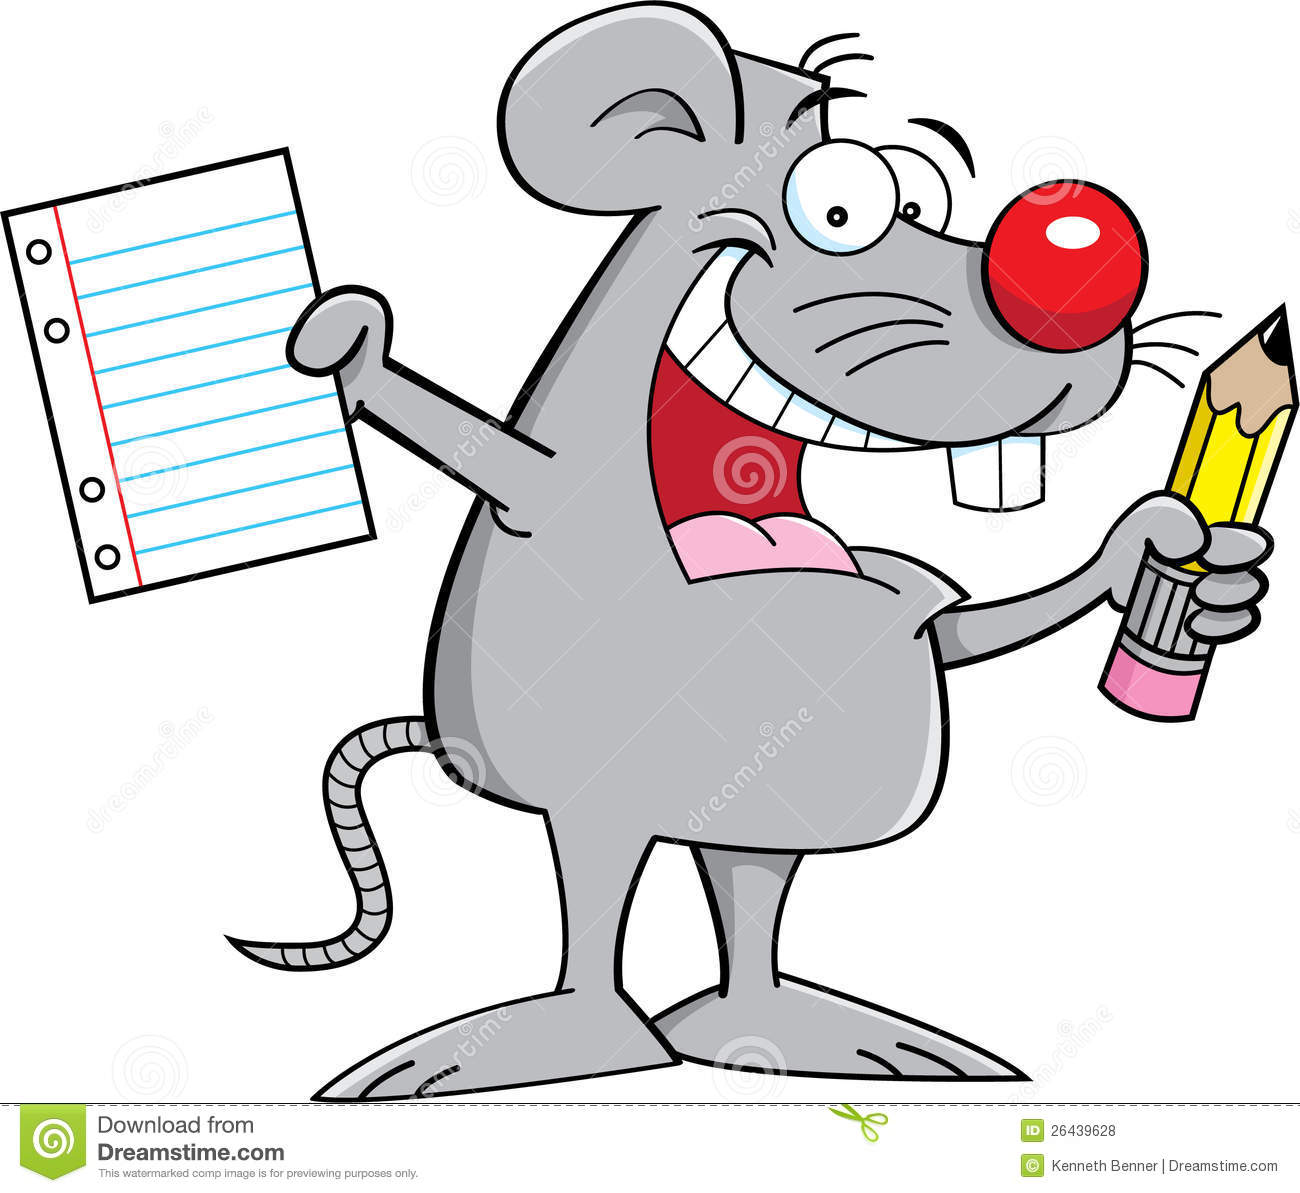 Mouse Holding A Paper And Pencil Stock Vector - Illustration of animal, cartoon: 26439628